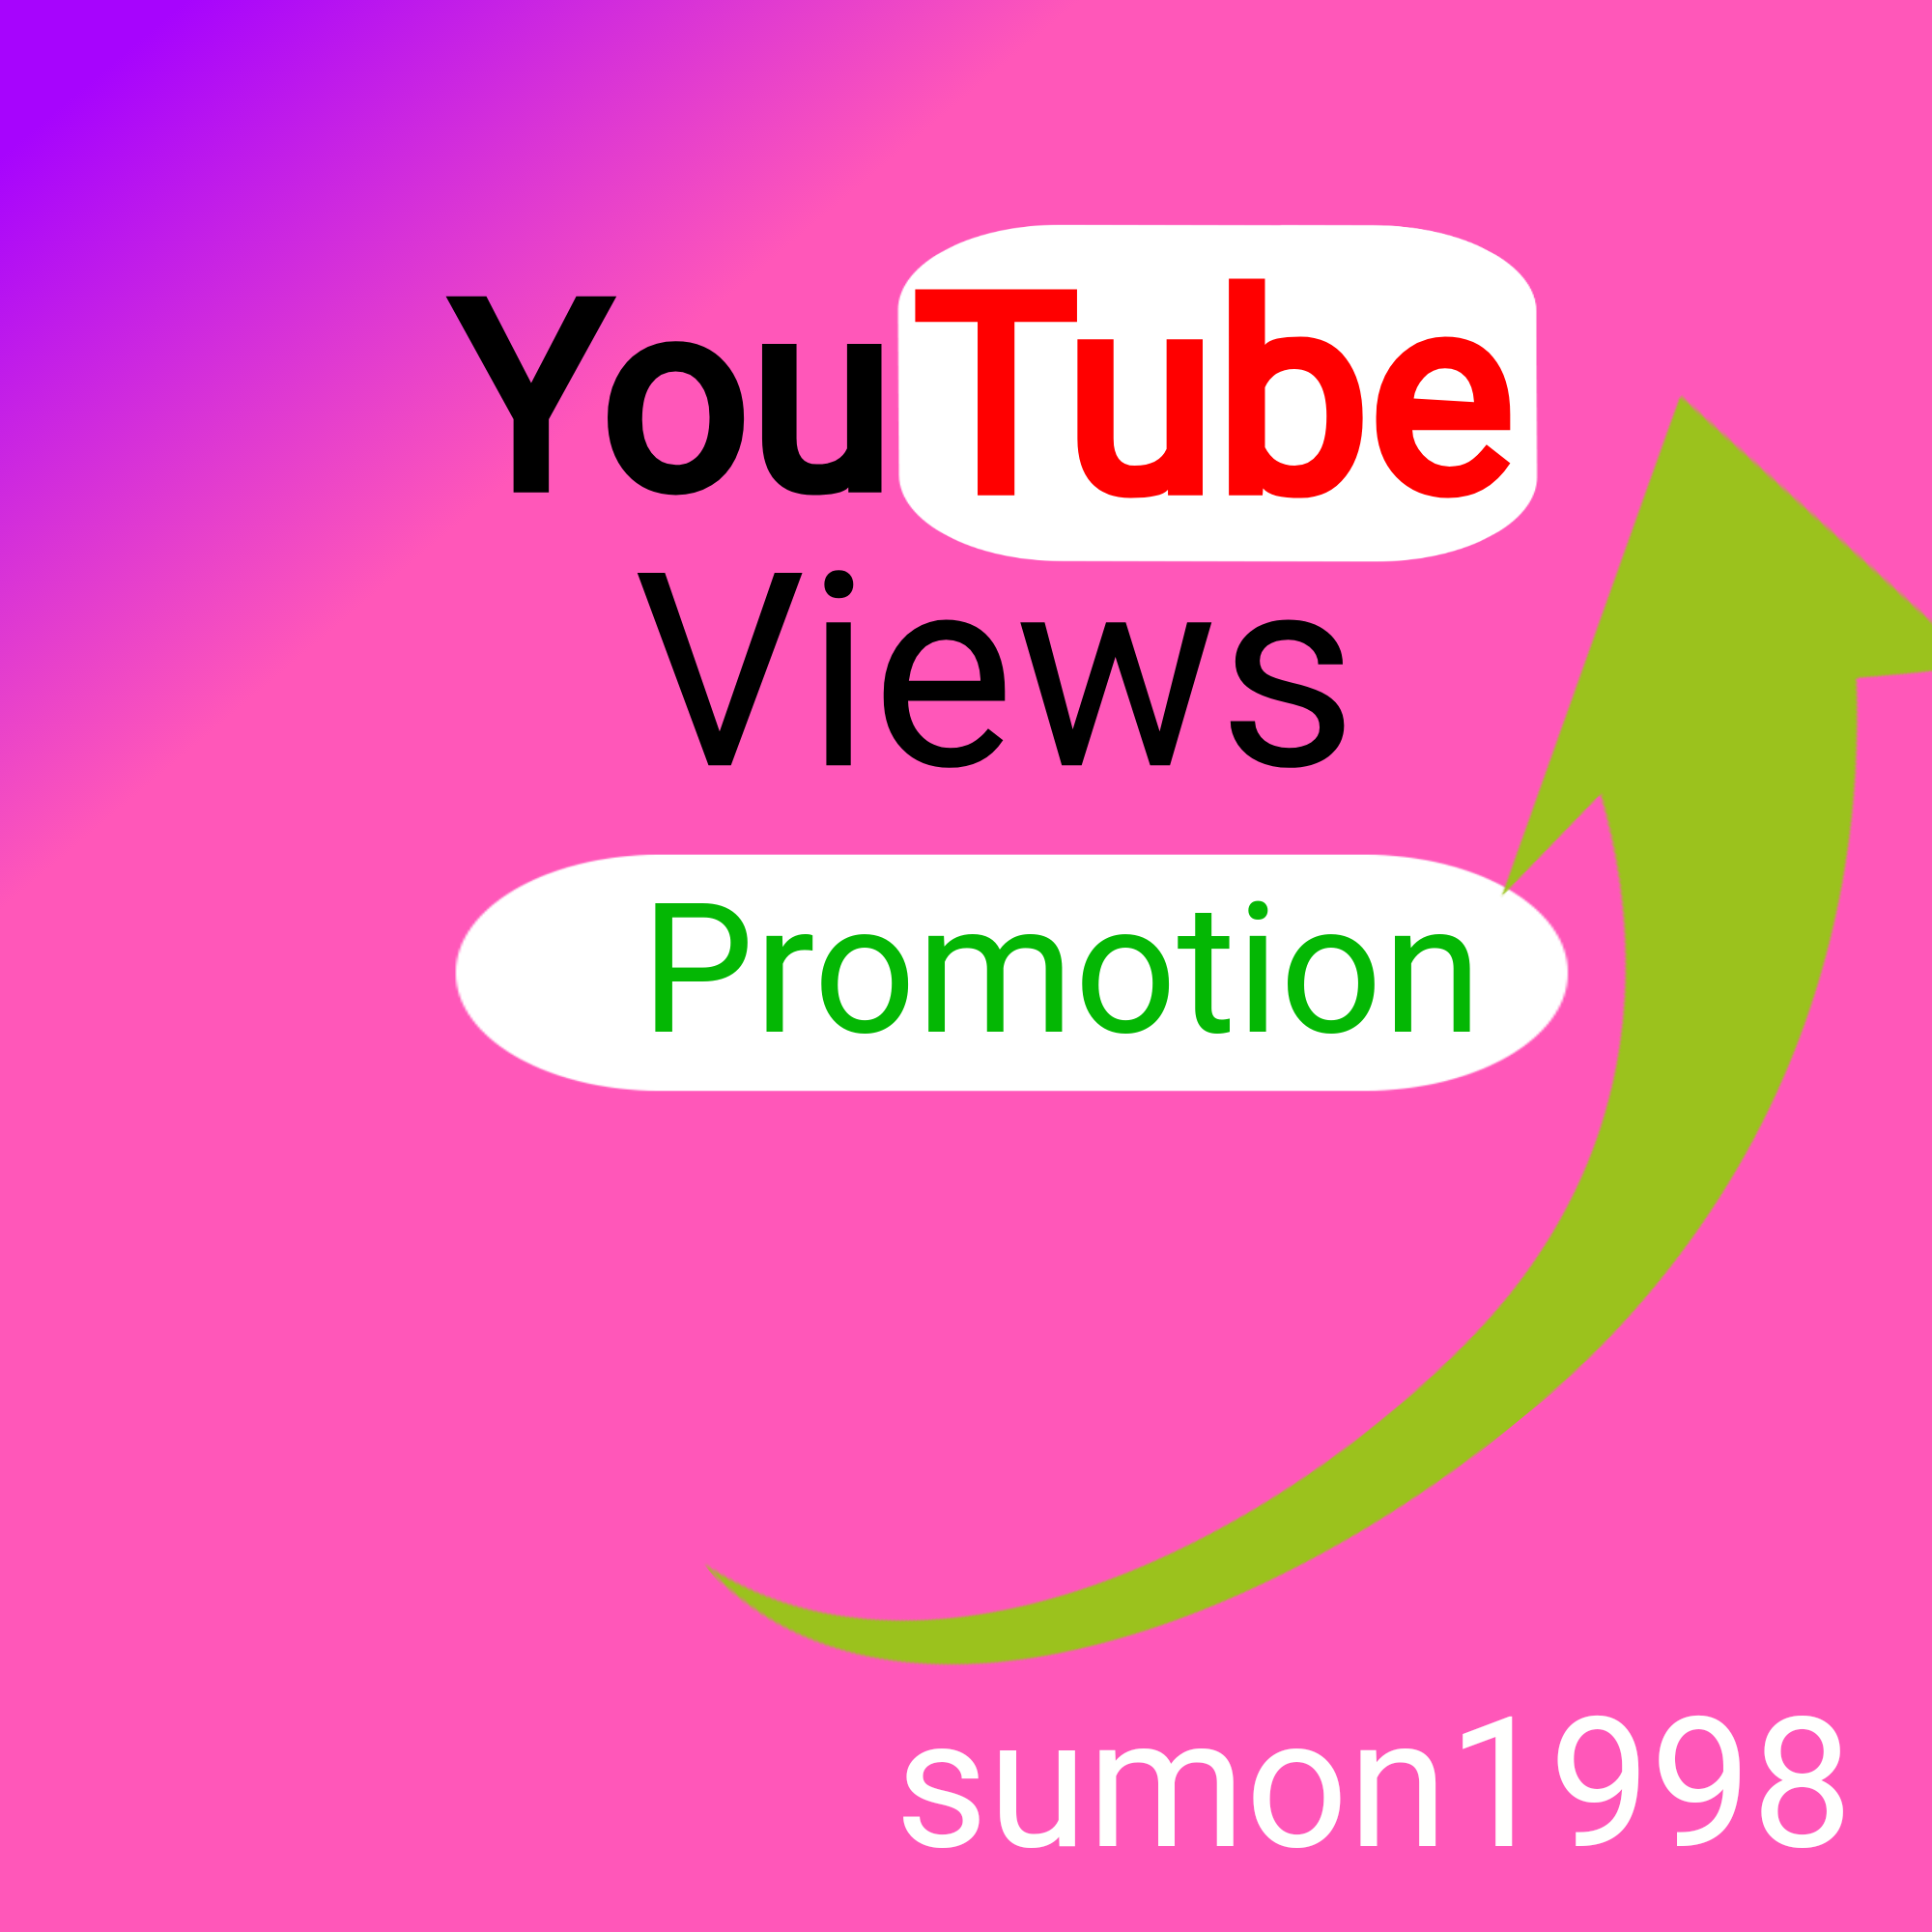 NON DROP YouTube Video promotion Marketing with Lifetime Non Drop Guaranteed